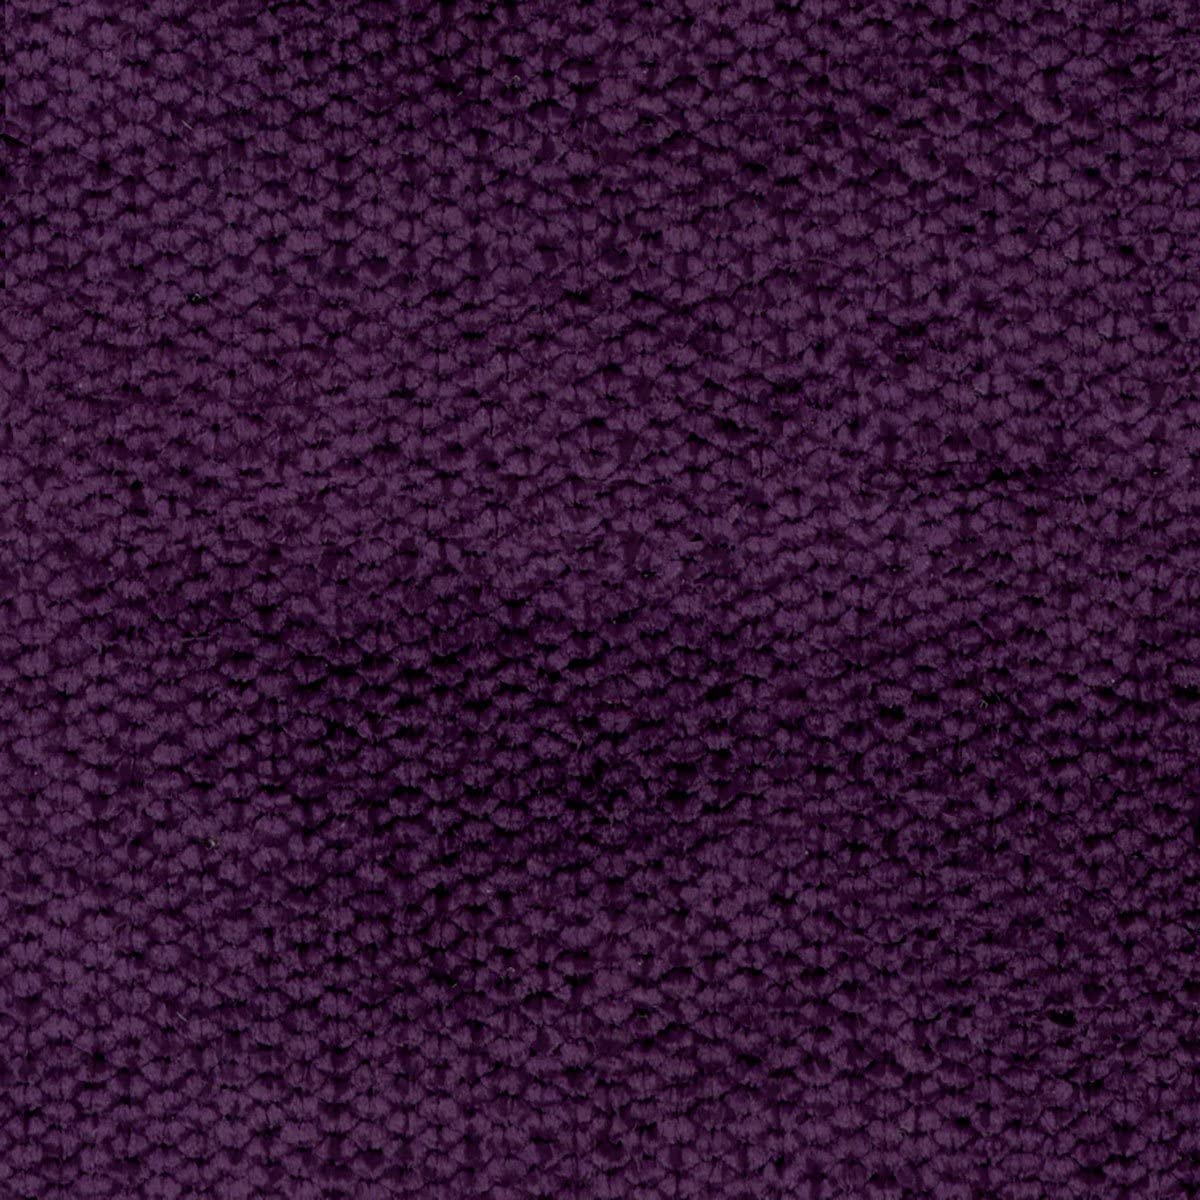 Eggplant Purple Solids Plain Solid Woven by th Upholstery Fabric Year-end Tulsa Mall gift